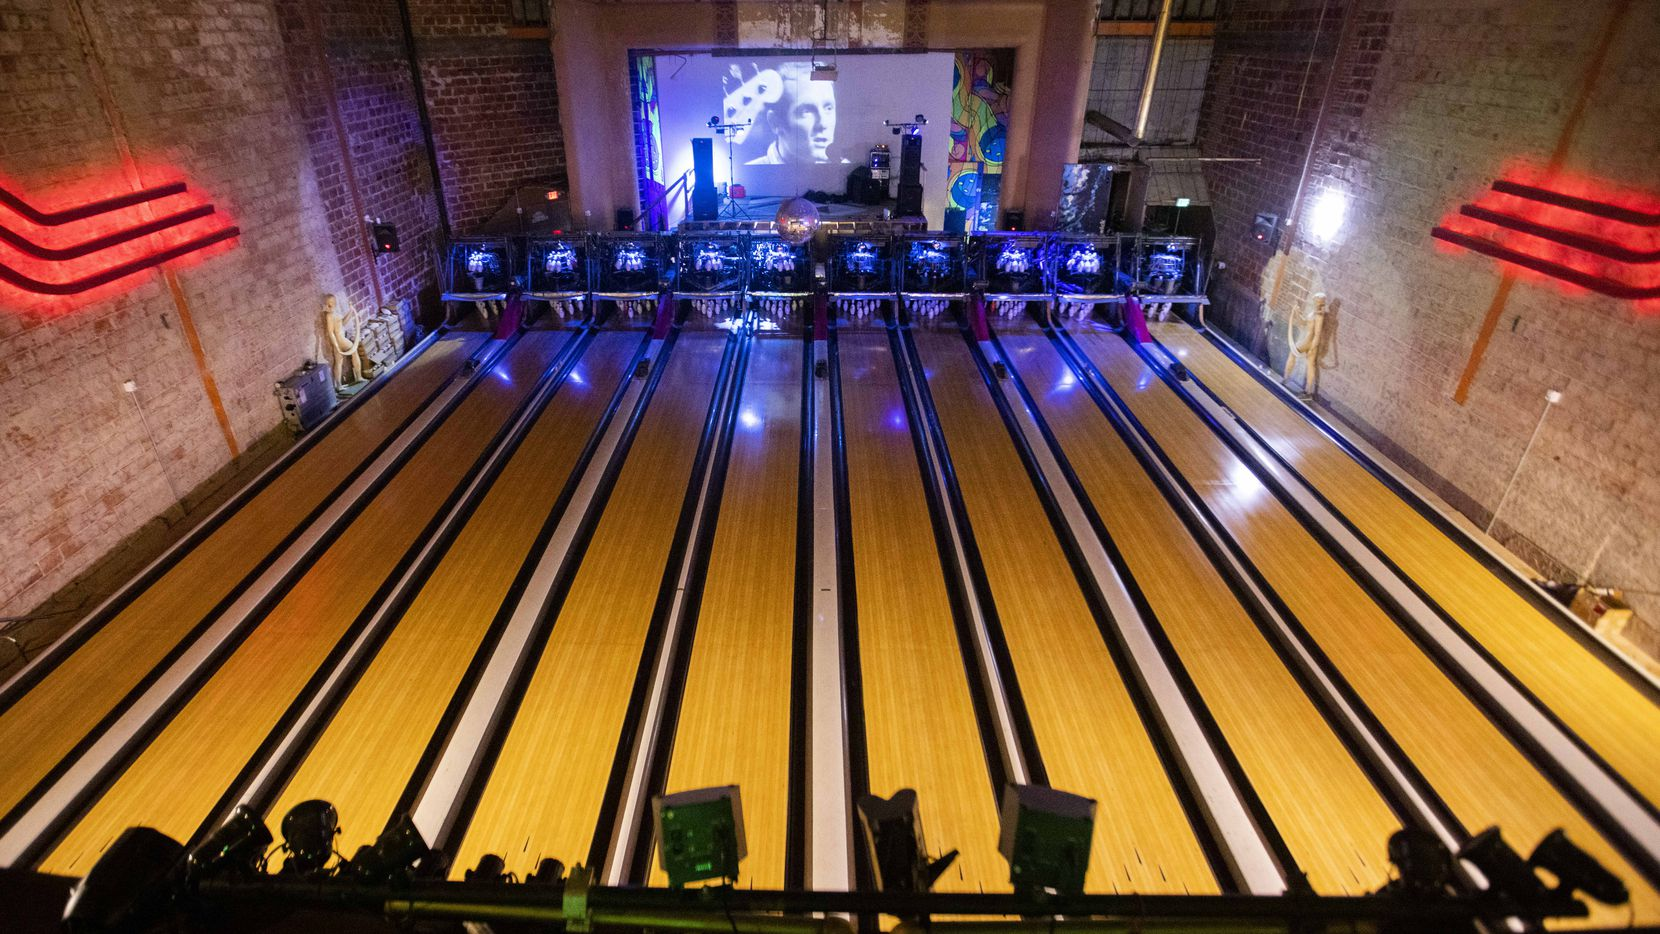 The bandstand looks directly out onto the bowling lanes at Bowlski's, located in the old Lakewood Theater.